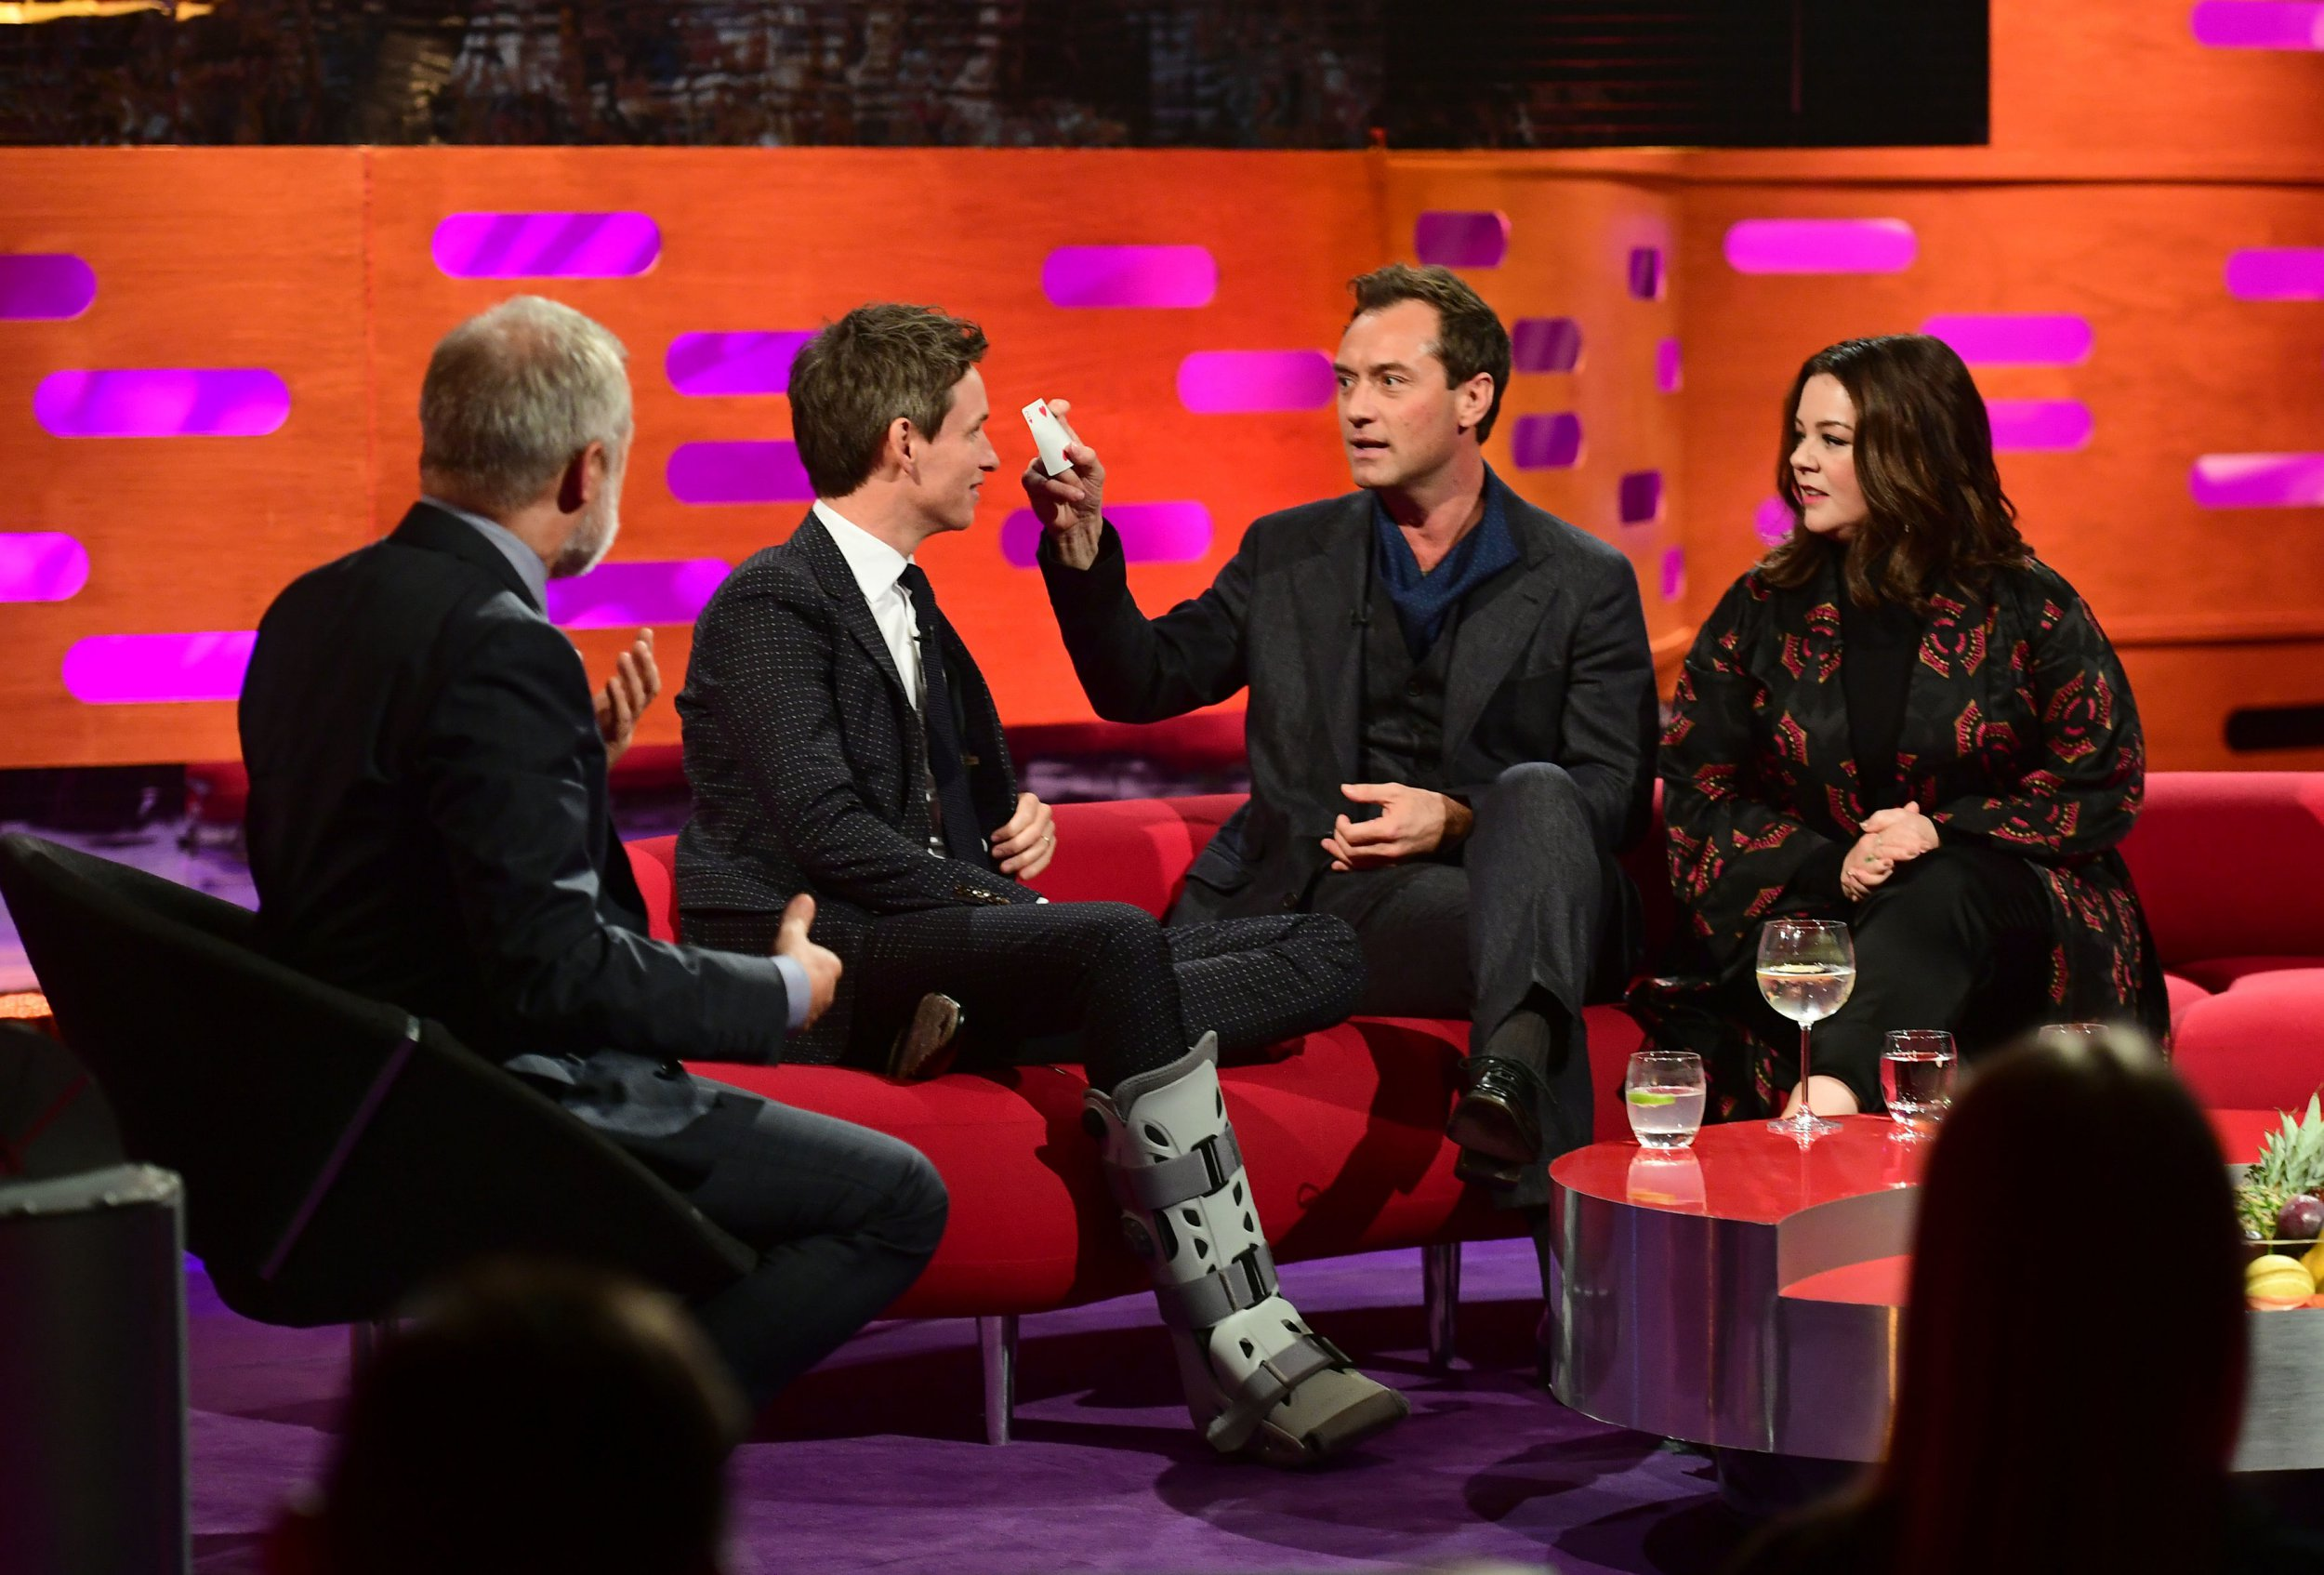 (left to right) Graham Norton, Eddie Redmayne, Jude Law and Melissa McCarthy during the filming of the Graham Norton Show at BBC Studioworks 6 Television Centre, Wood Lane, London, to be aired on BBC One on Friday. PRESS ASSOCIATION Photo. Picture date: Thursday October 18, 2018. Photo credit should read: PA Images on behalf of So TV